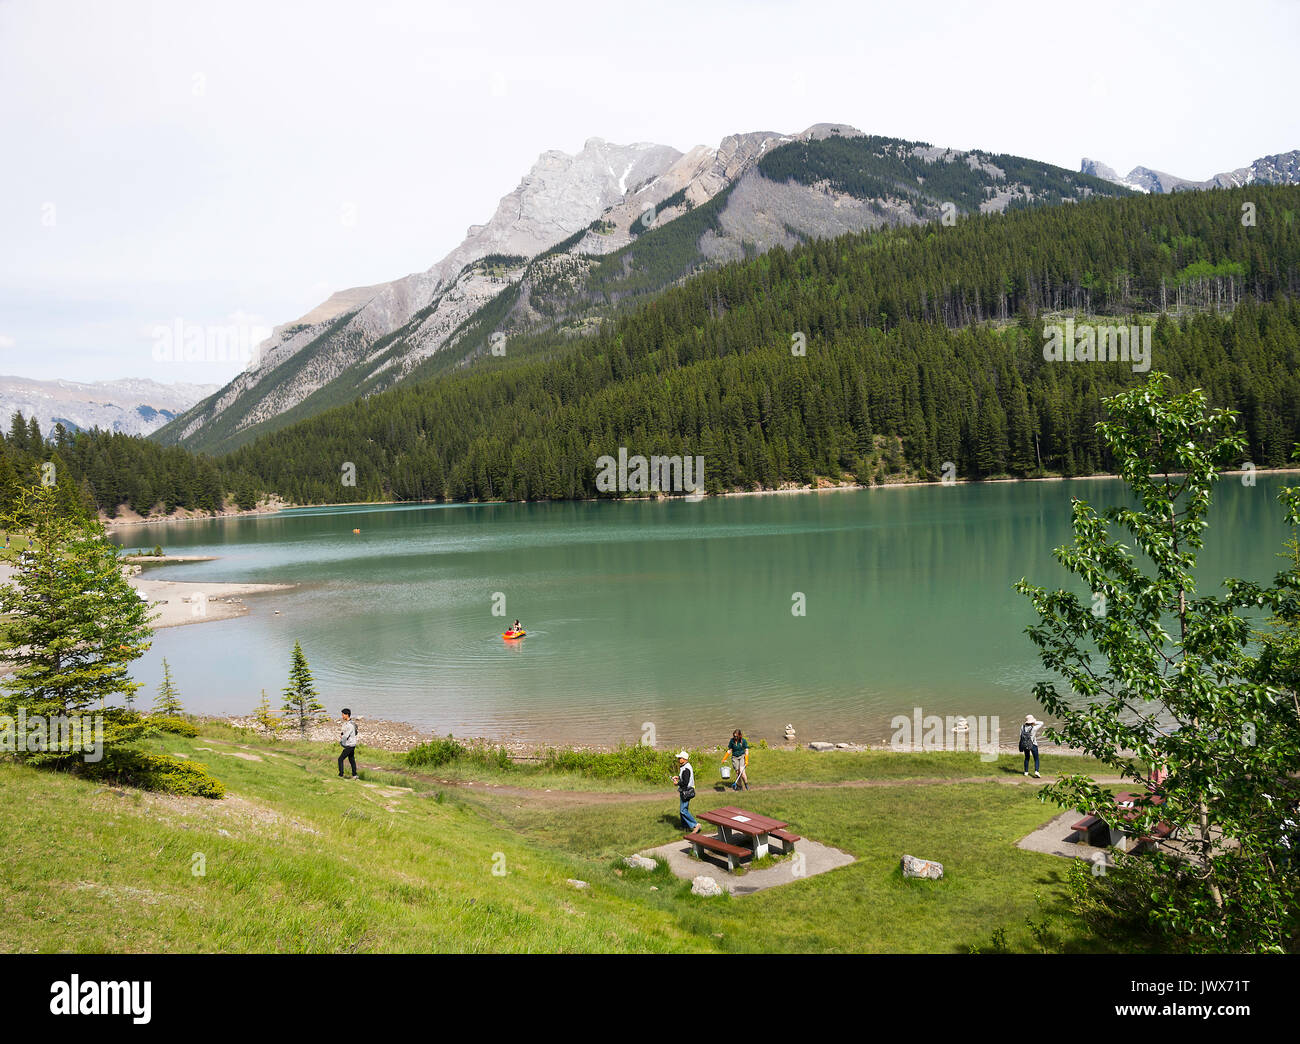 The Popular Two Jack Lake near Banff Alberta Canada - Stock Image